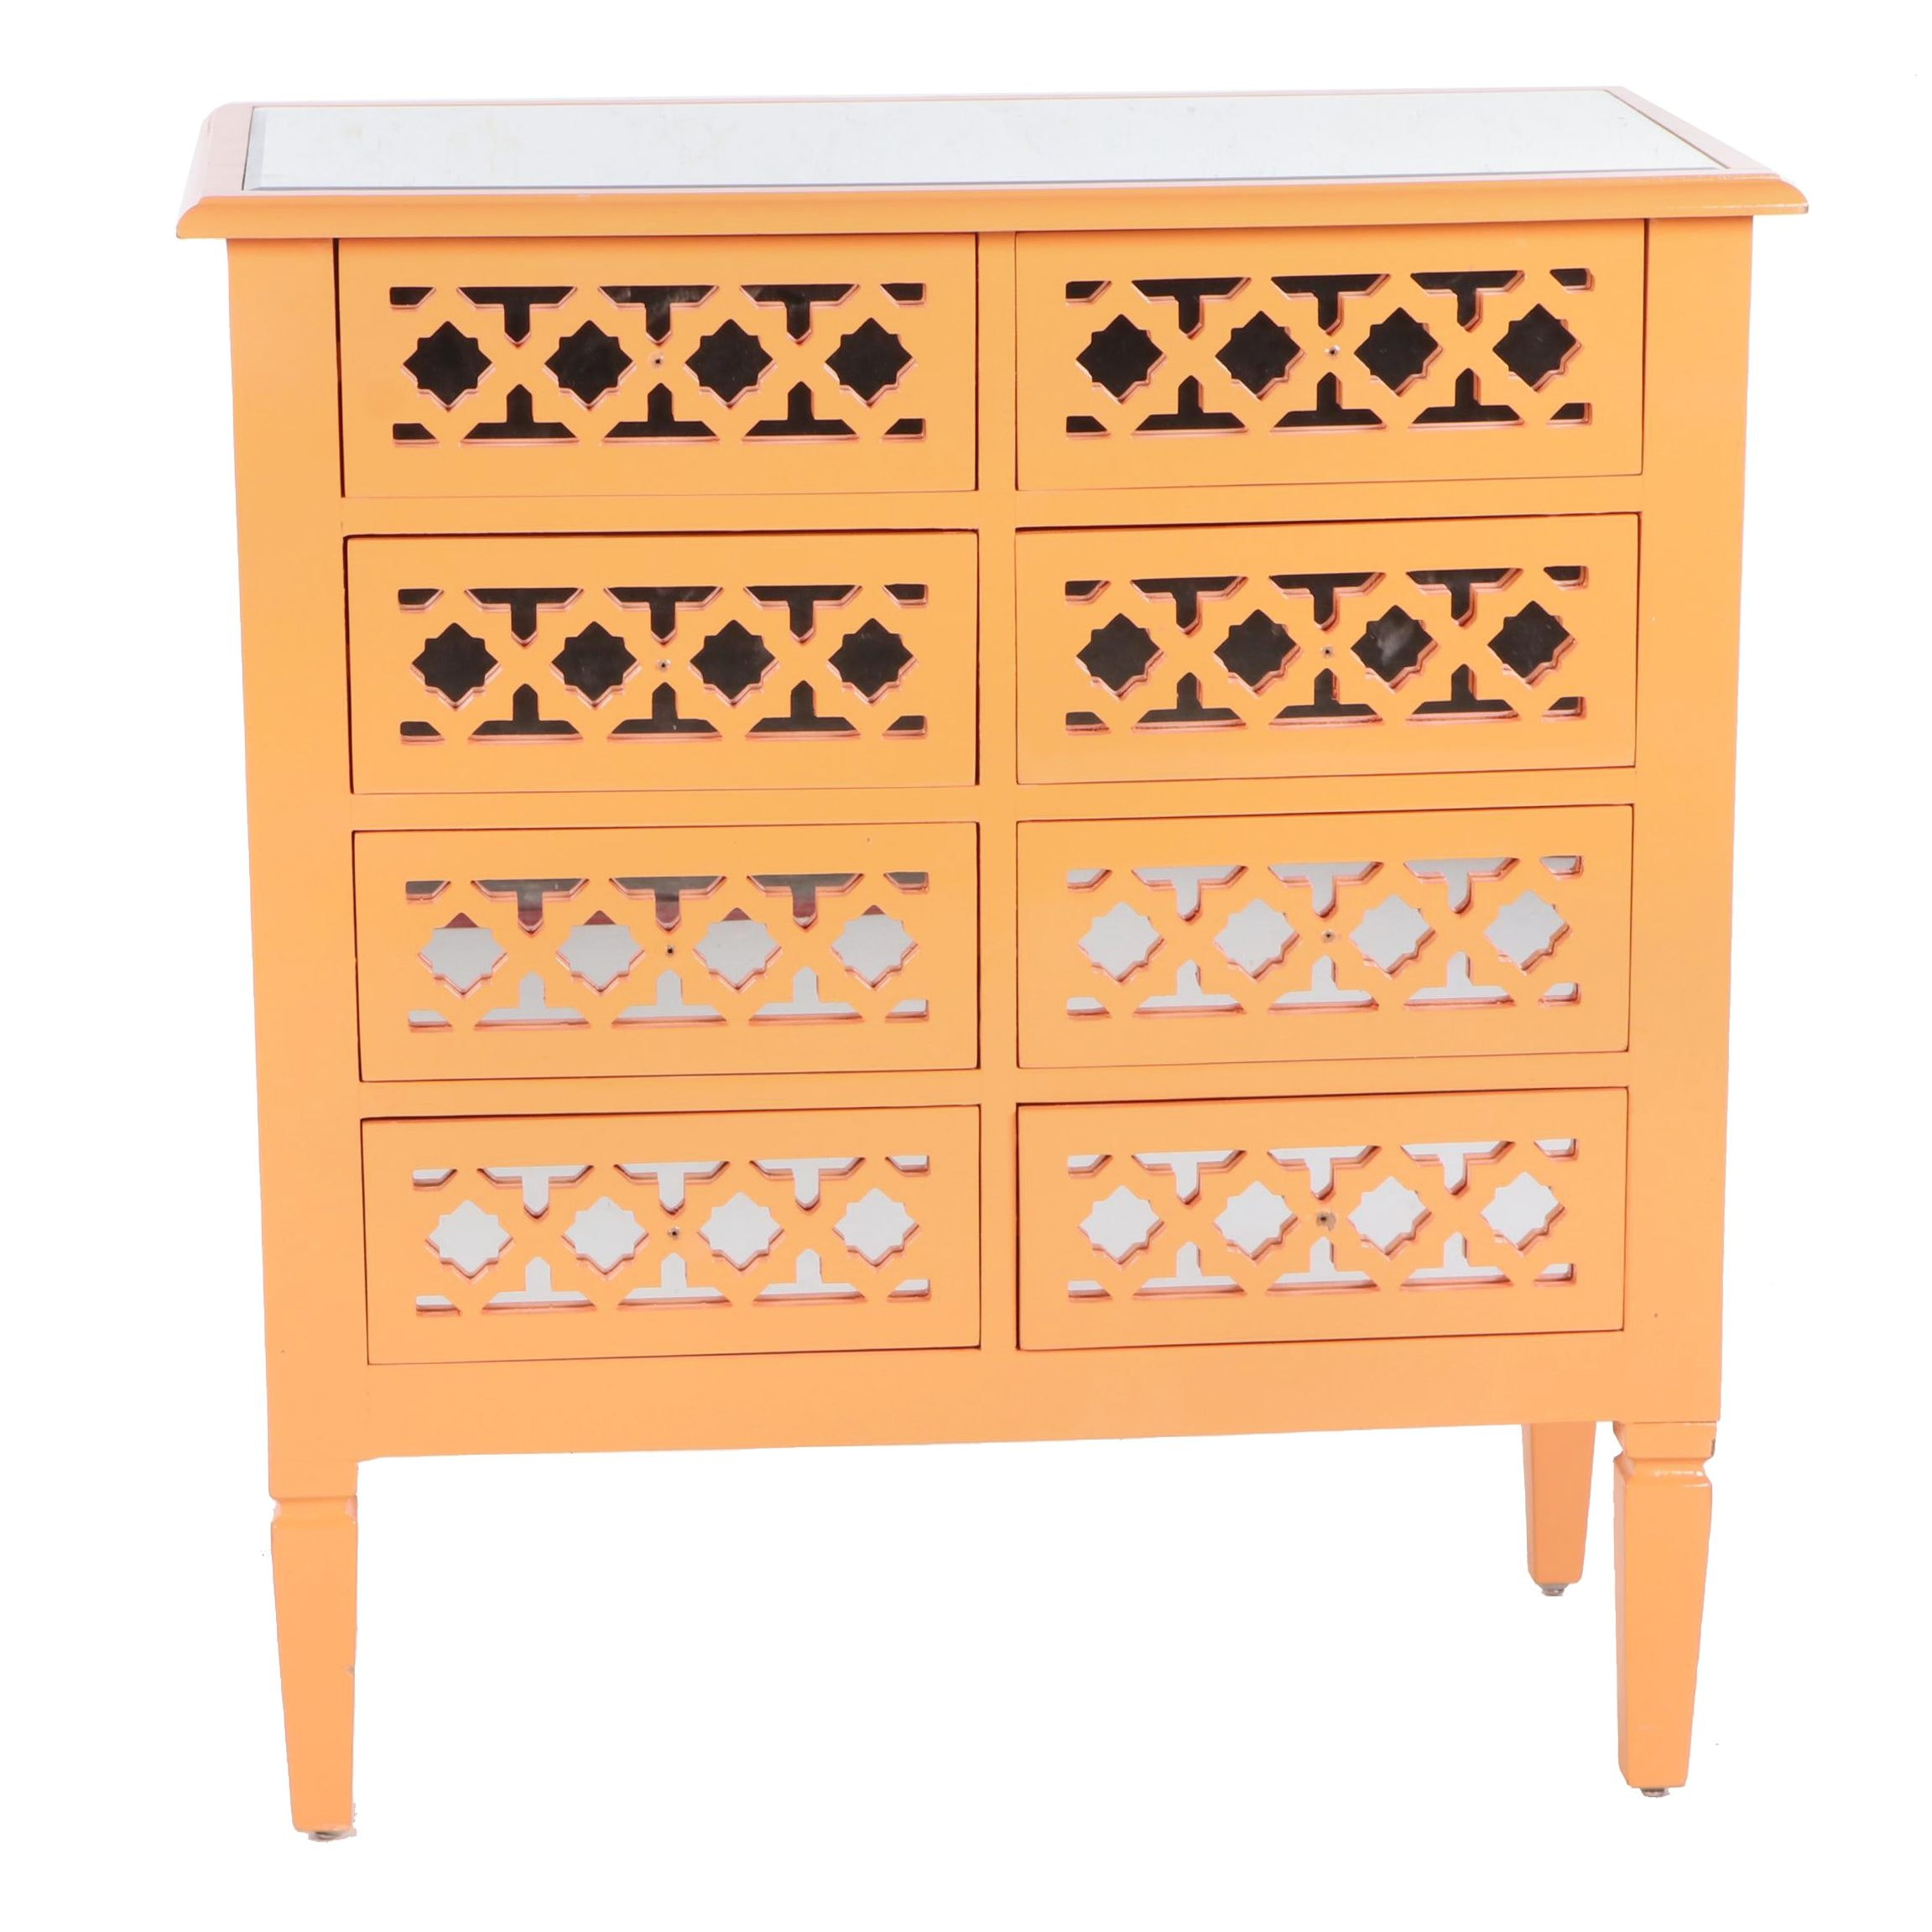 Three Hands Contemporary Orange Engineered Wood and Mirrored Cabinet